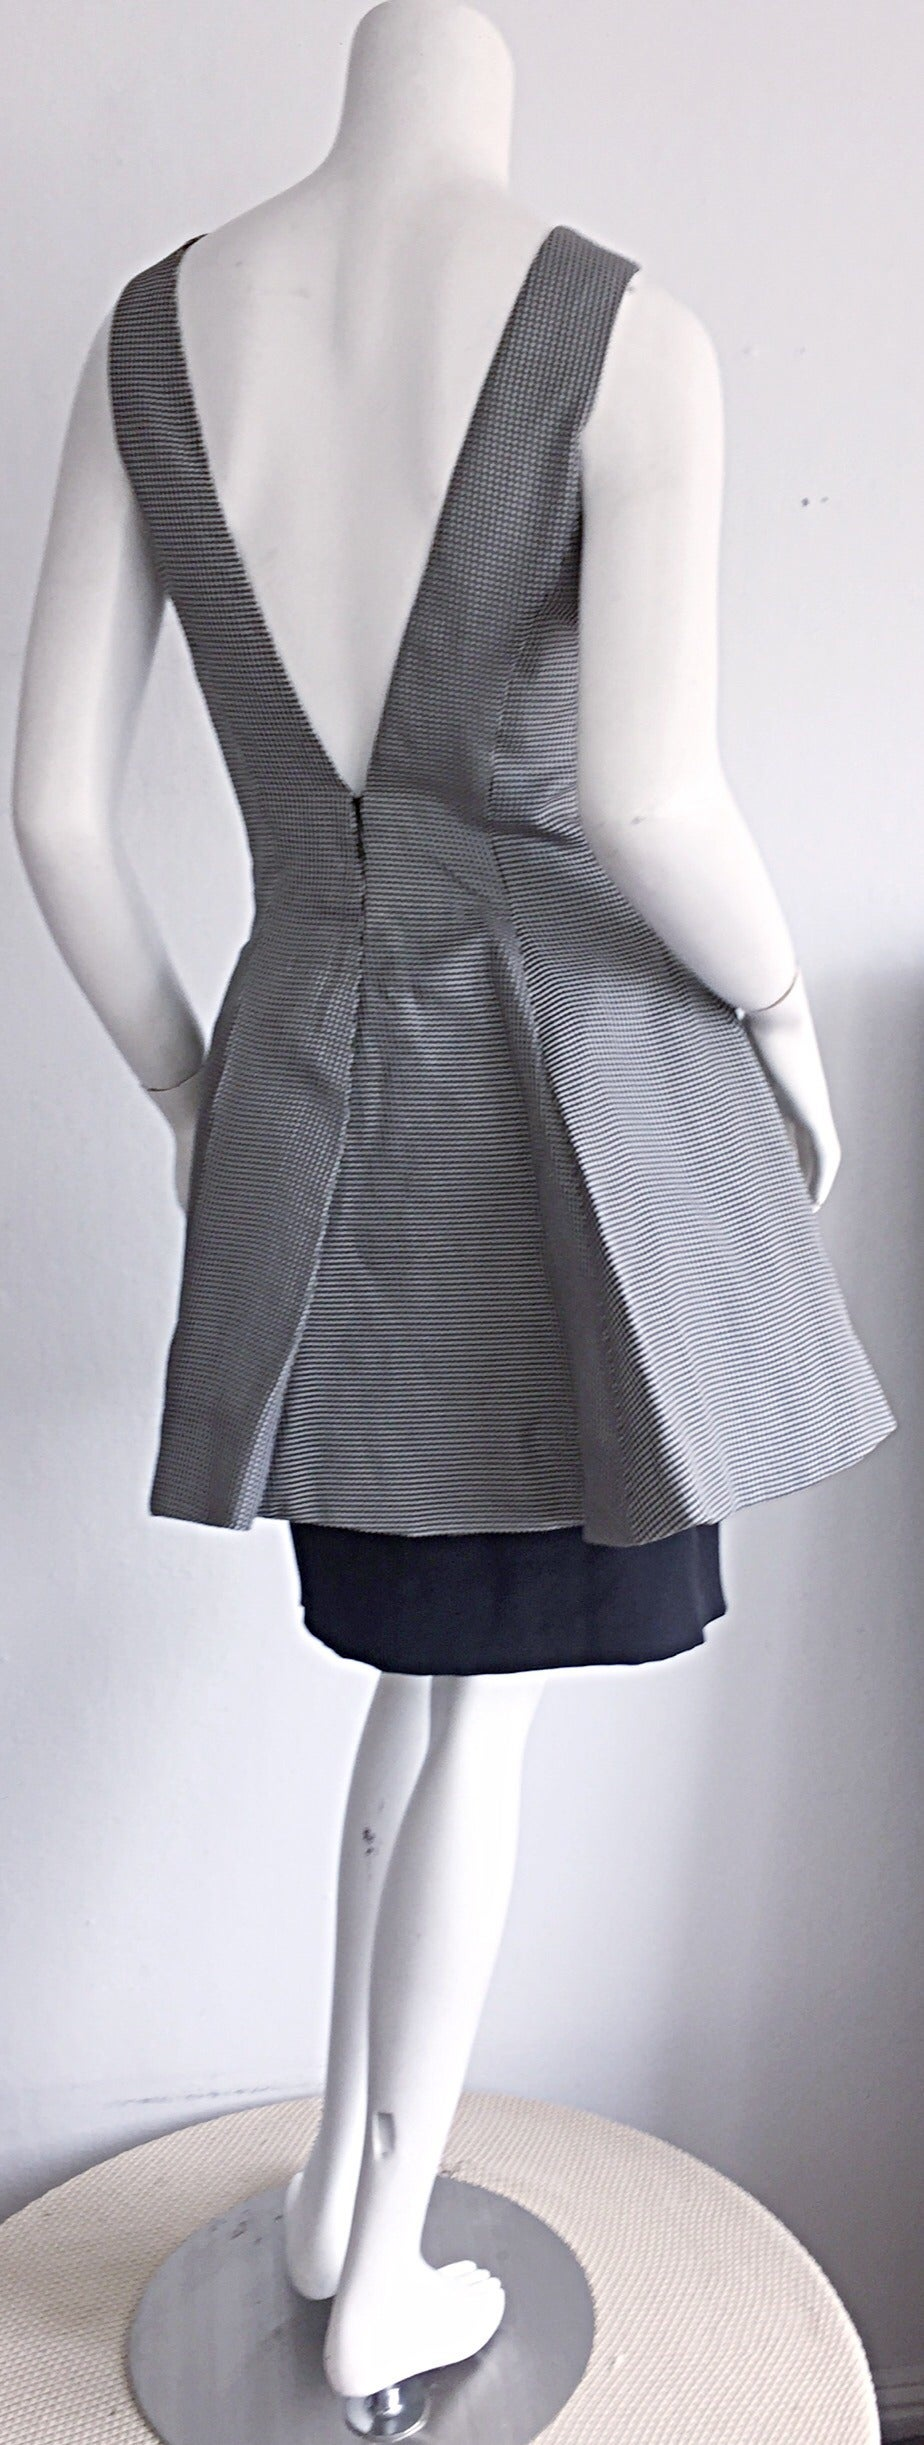 Vintage James Purcell Black + White Silk Gingham Fit N' Flare Dress Size 8 5